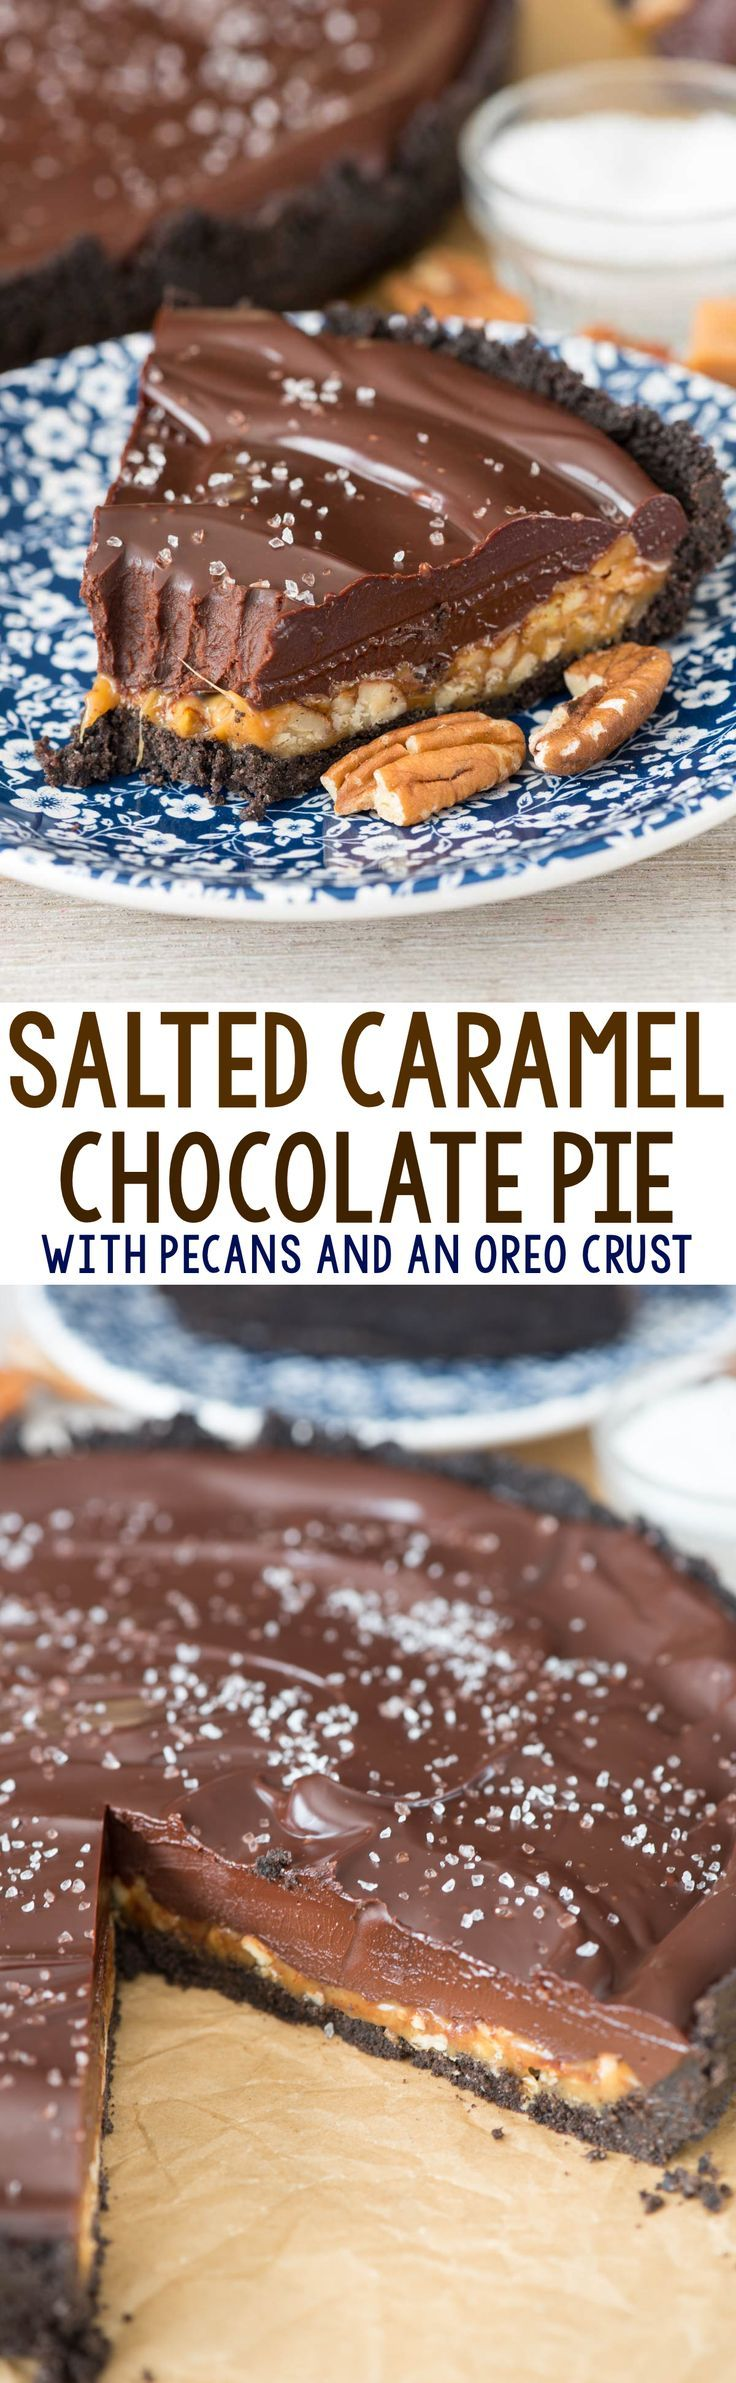 Salted Caramel Pecan Chocolate Pie - this EASY no bake pie recipe has an Oreo crust, a layer of salted caramel and pecans, and is topped off with a thick layer of chocolate ganache and a topping of se